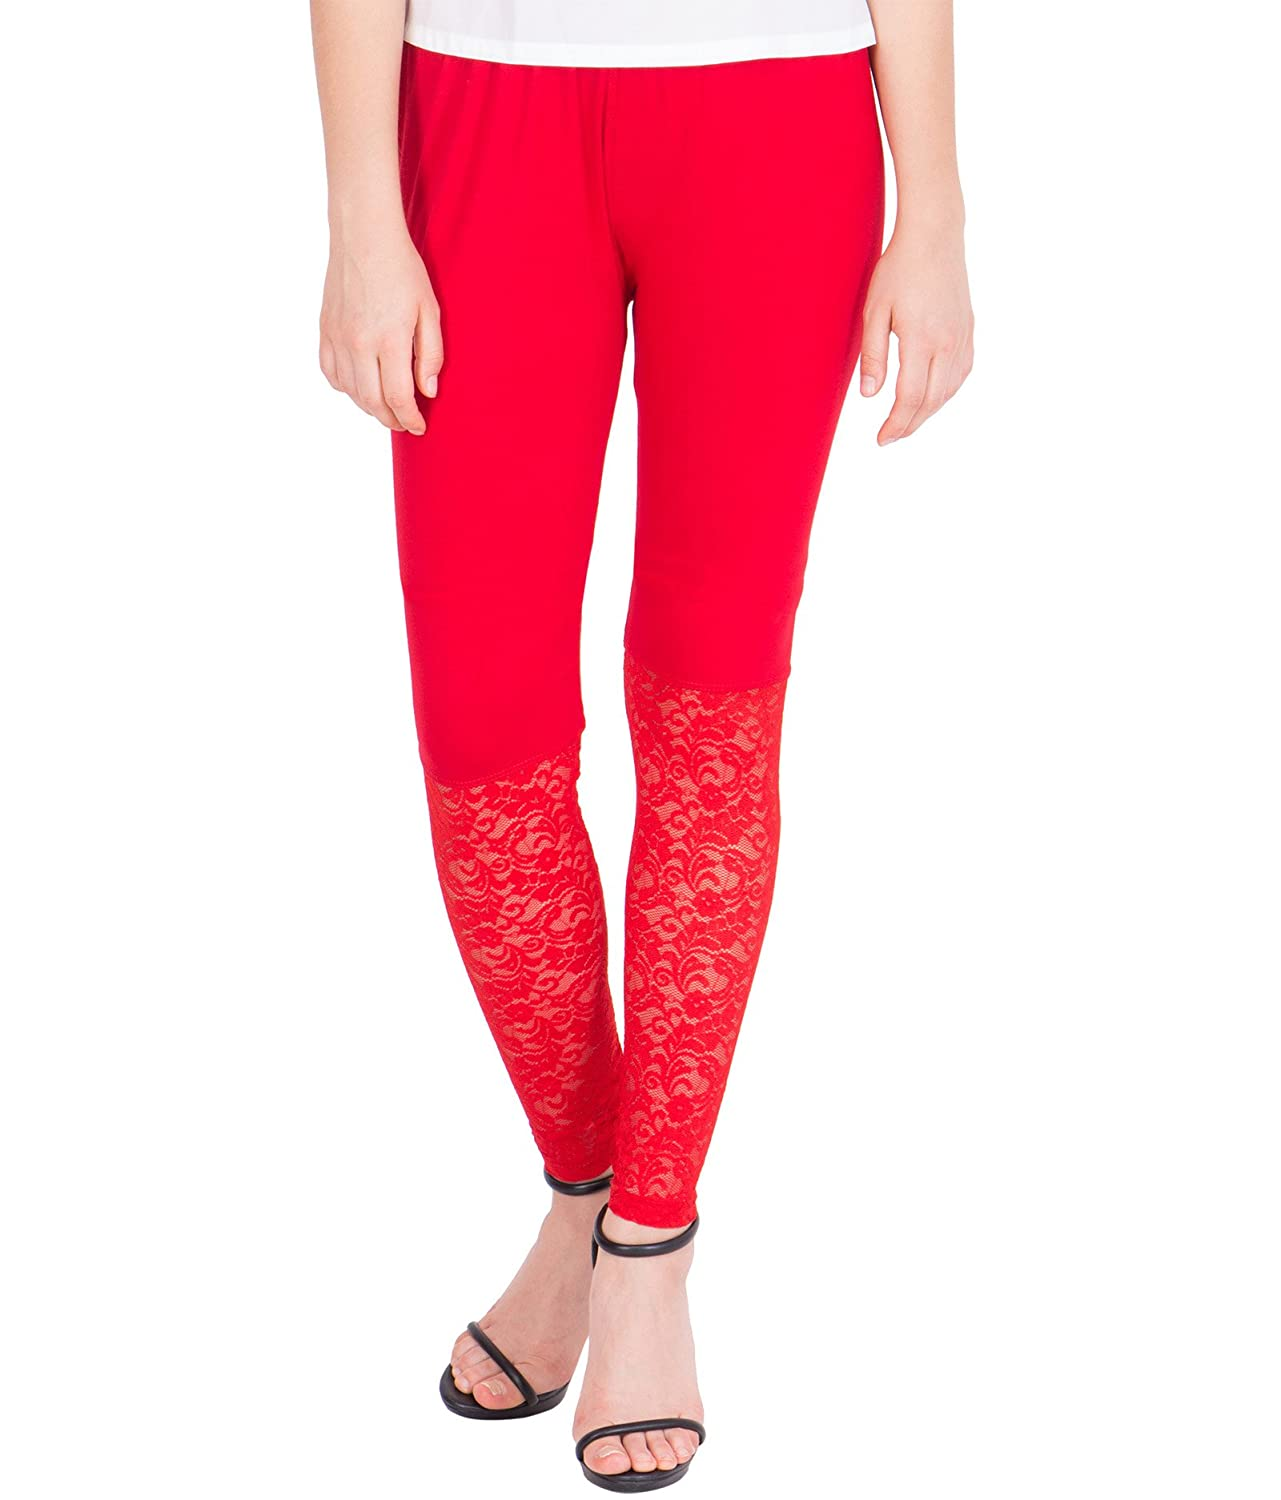 a26c2a8269c85 American-Elm Women's Ankle length Designer Lace Legging- Red: Amazon.in:  Clothing & Accessories